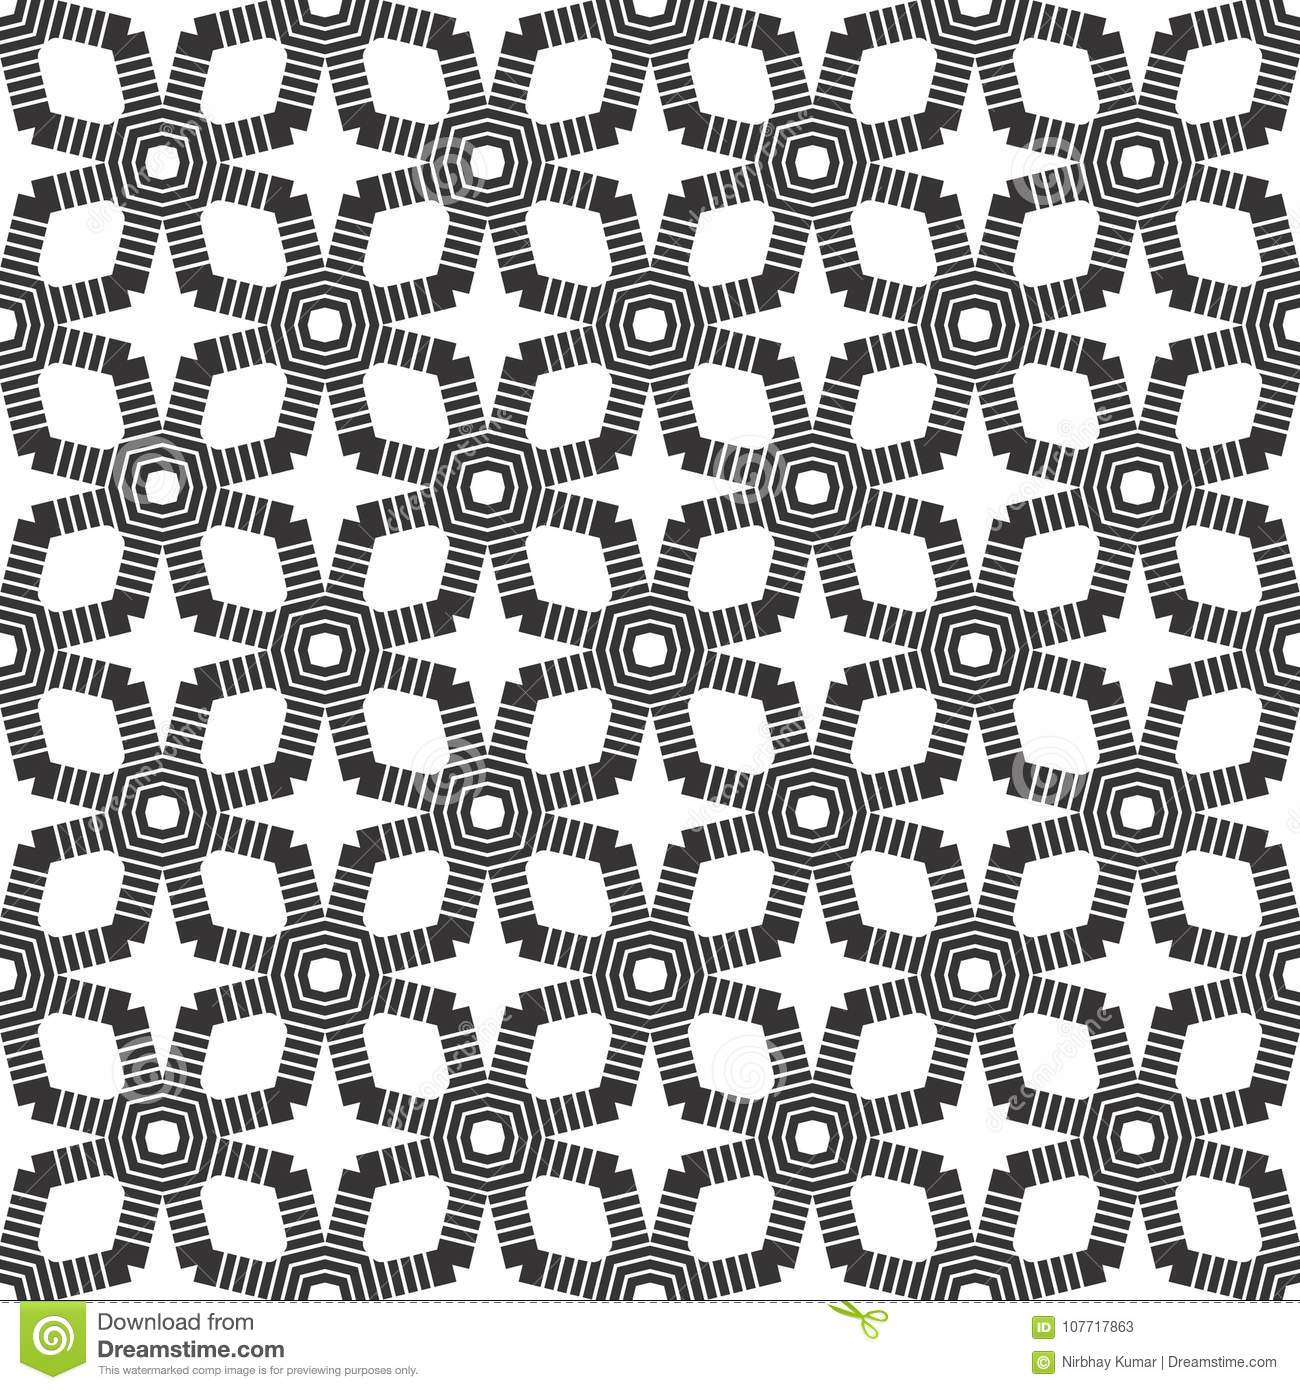 Simple Wallpaper Home Screen Black And White - pattern-website-background-wallpaper-screen-sever-book-cover-printing-laser-cutting-designs-vector-black-white-107717863  Pic_757279.jpg